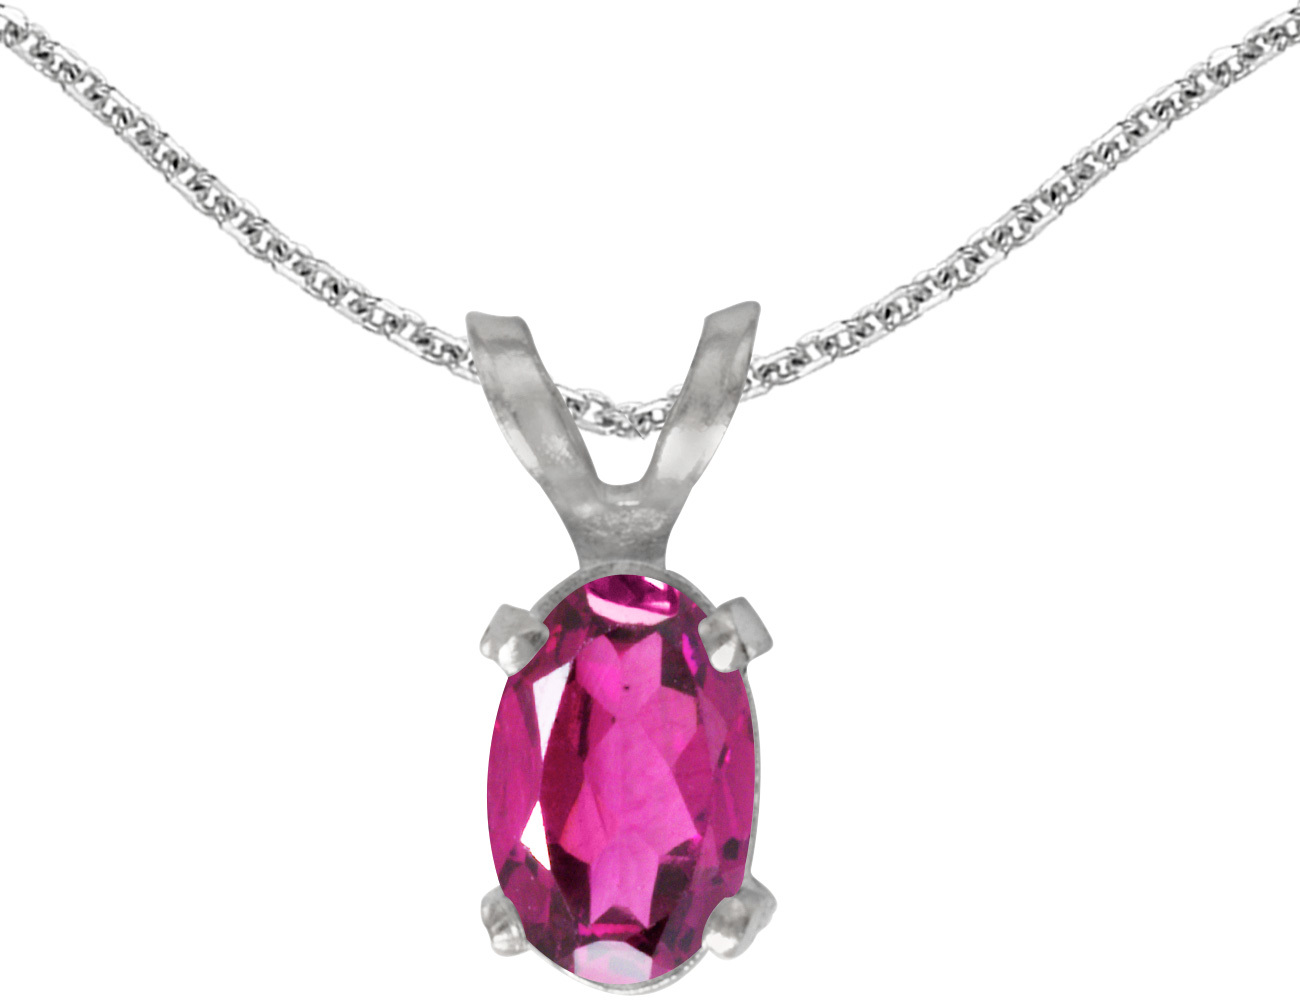 14k White Gold Oval Pink Topaz Pendant (Chain NOT included)